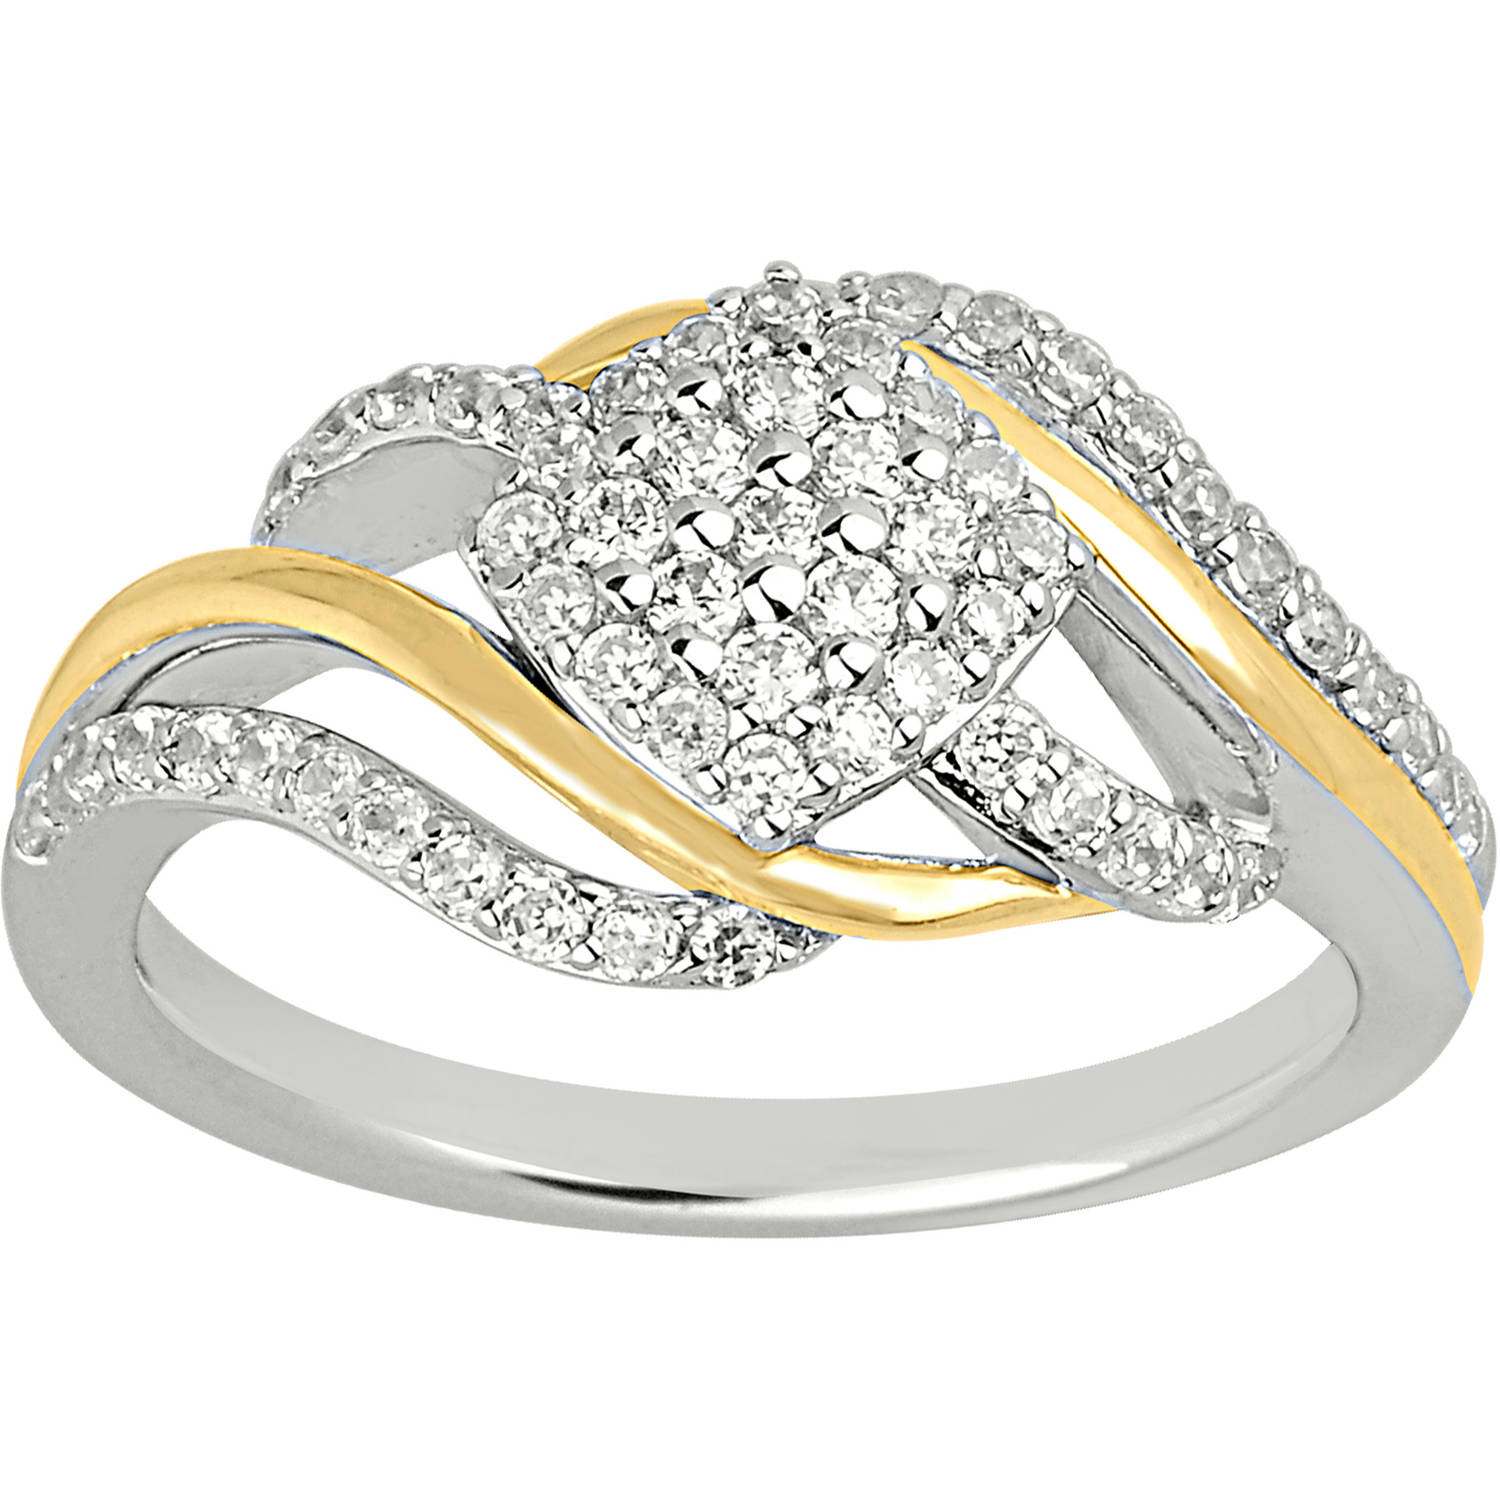 1/2 Carat T.W. Diamond 10kt Two-Tone By-Pass Silhouette Ring